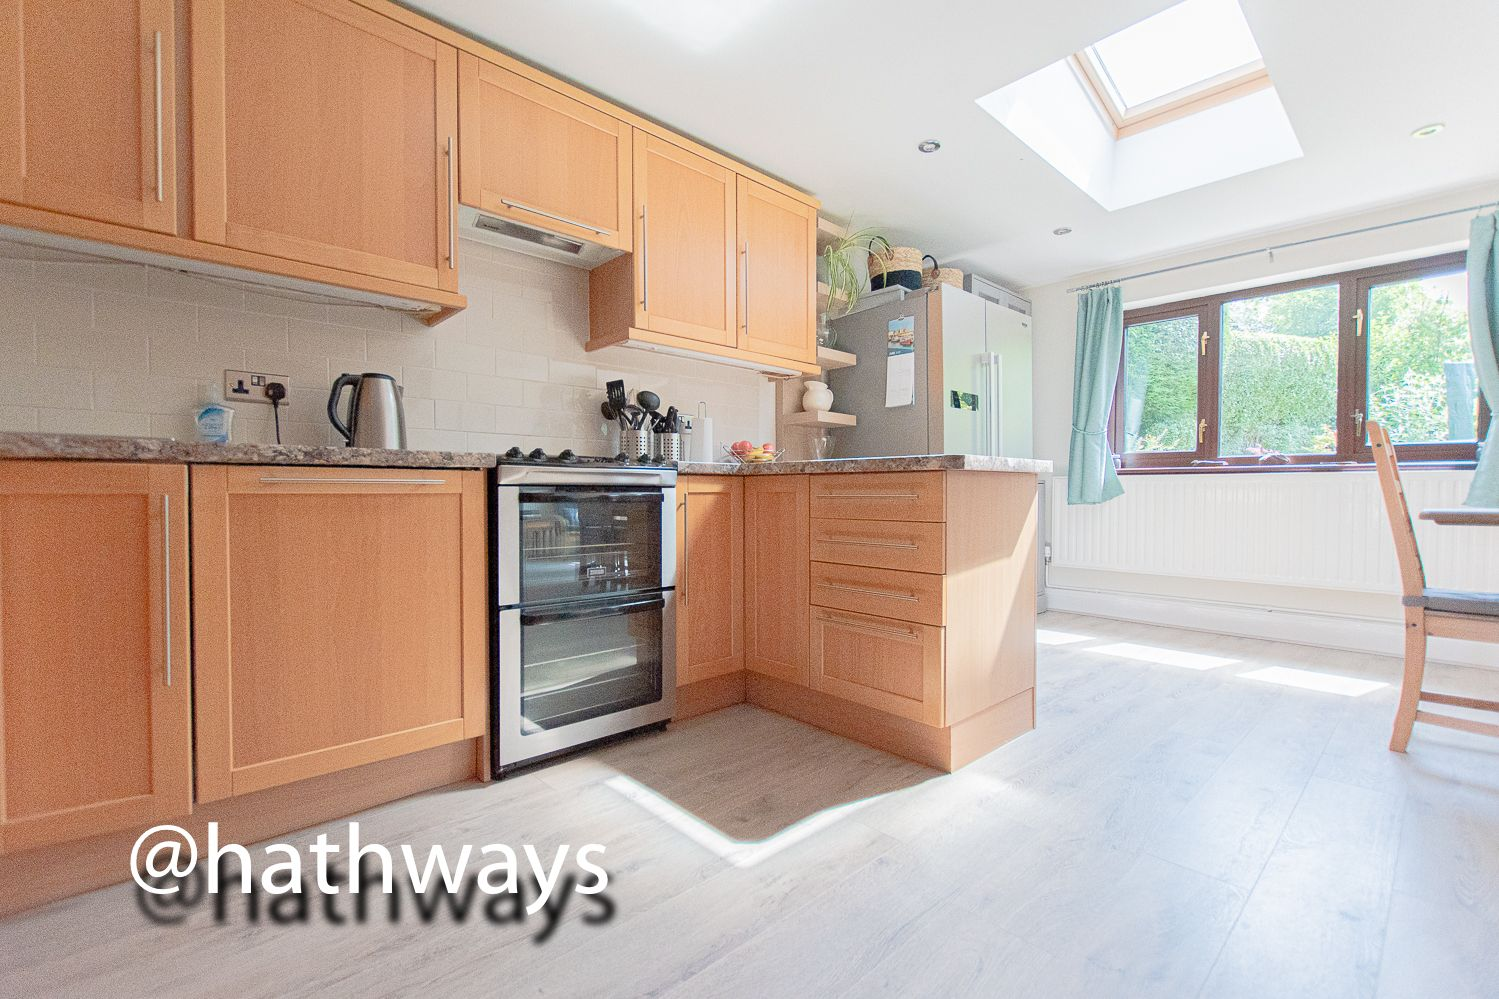 4 bed house for sale in Ashford Close South  - Property Image 18